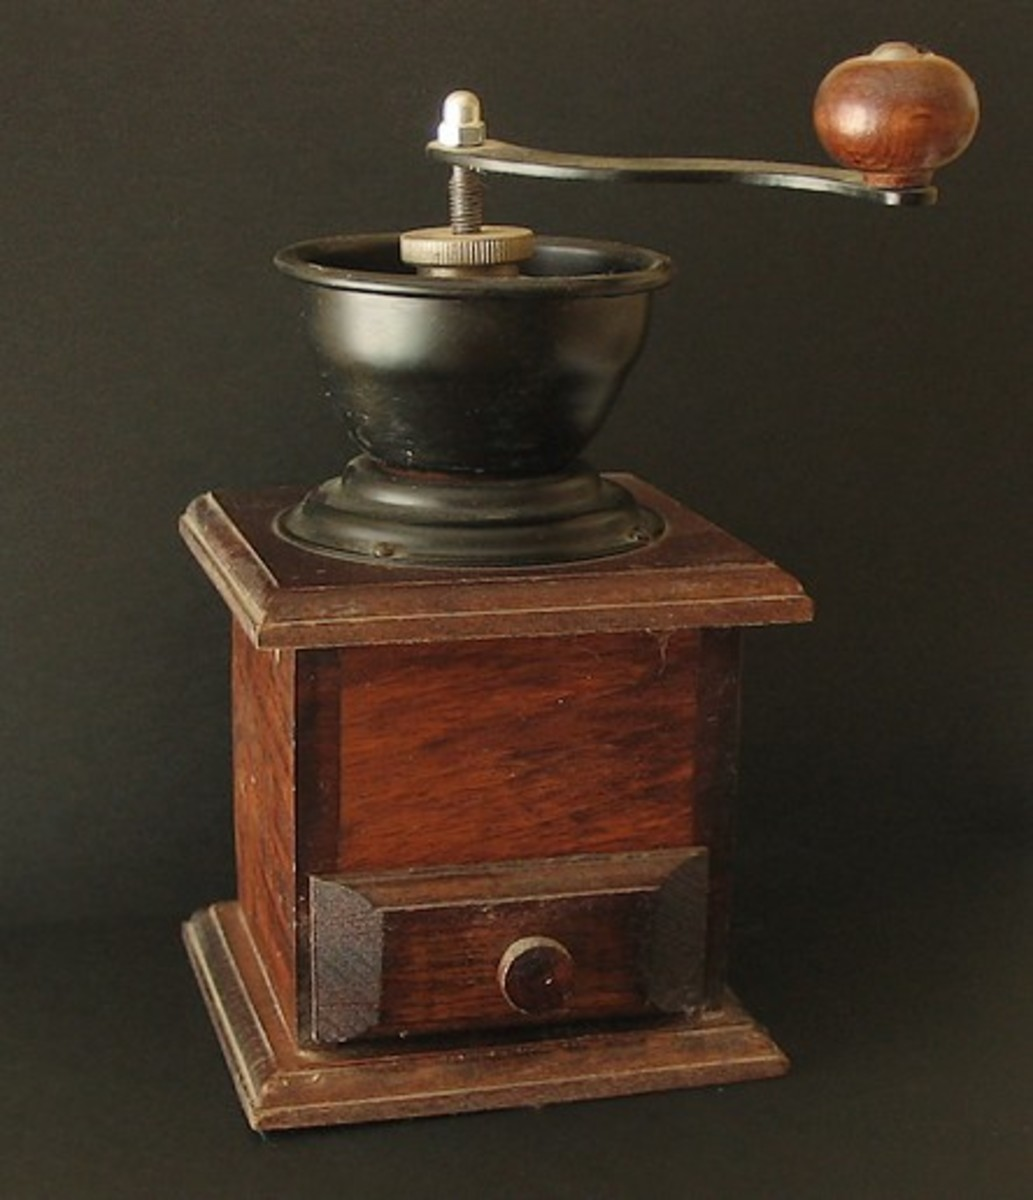 An old-fashioned coffee grinder.